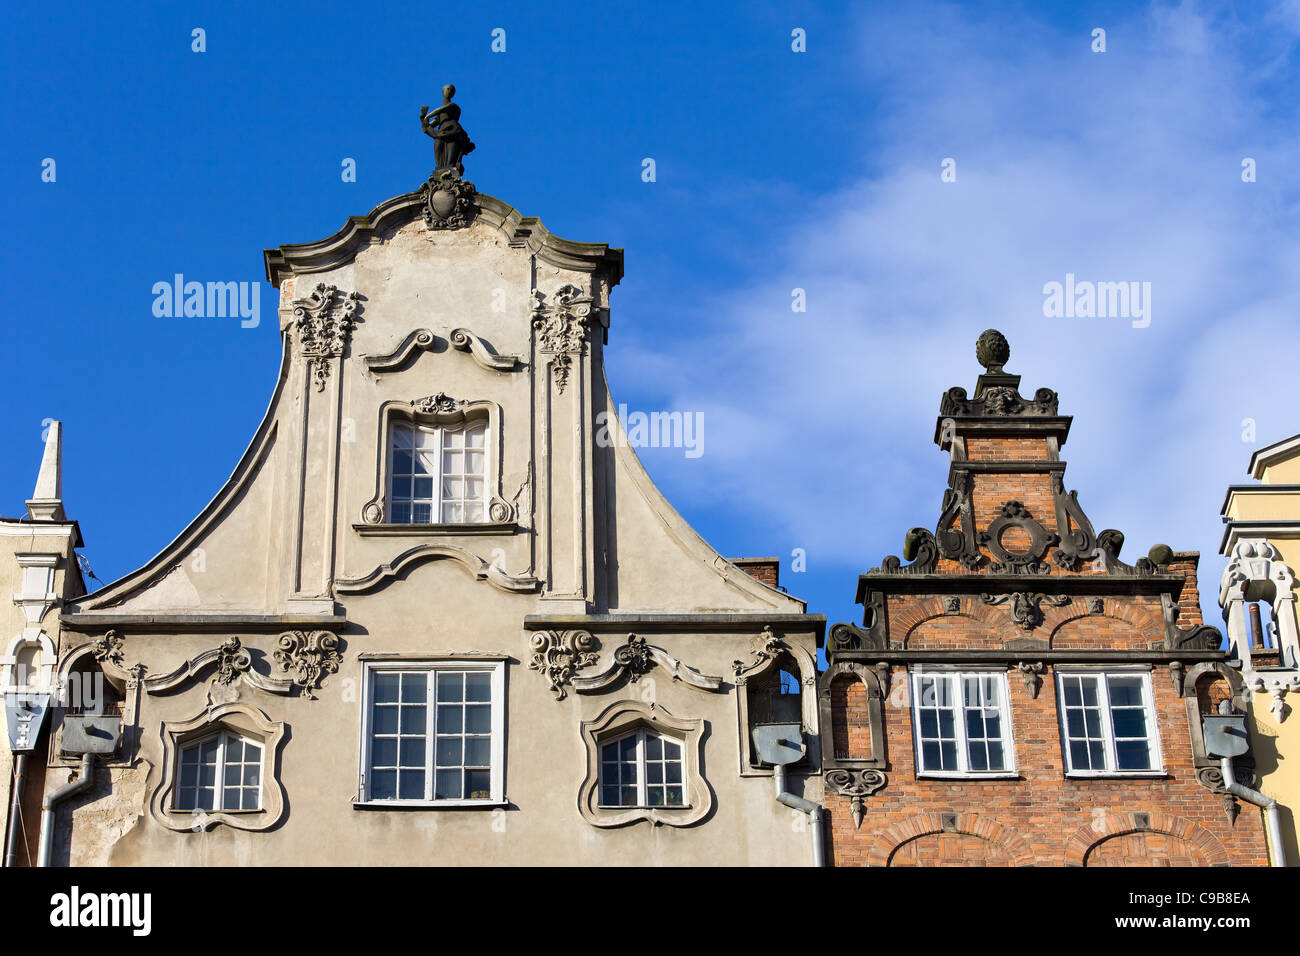 Ornate top of a tenement houses in the Old Town of Gdansk, Poland - Stock Image